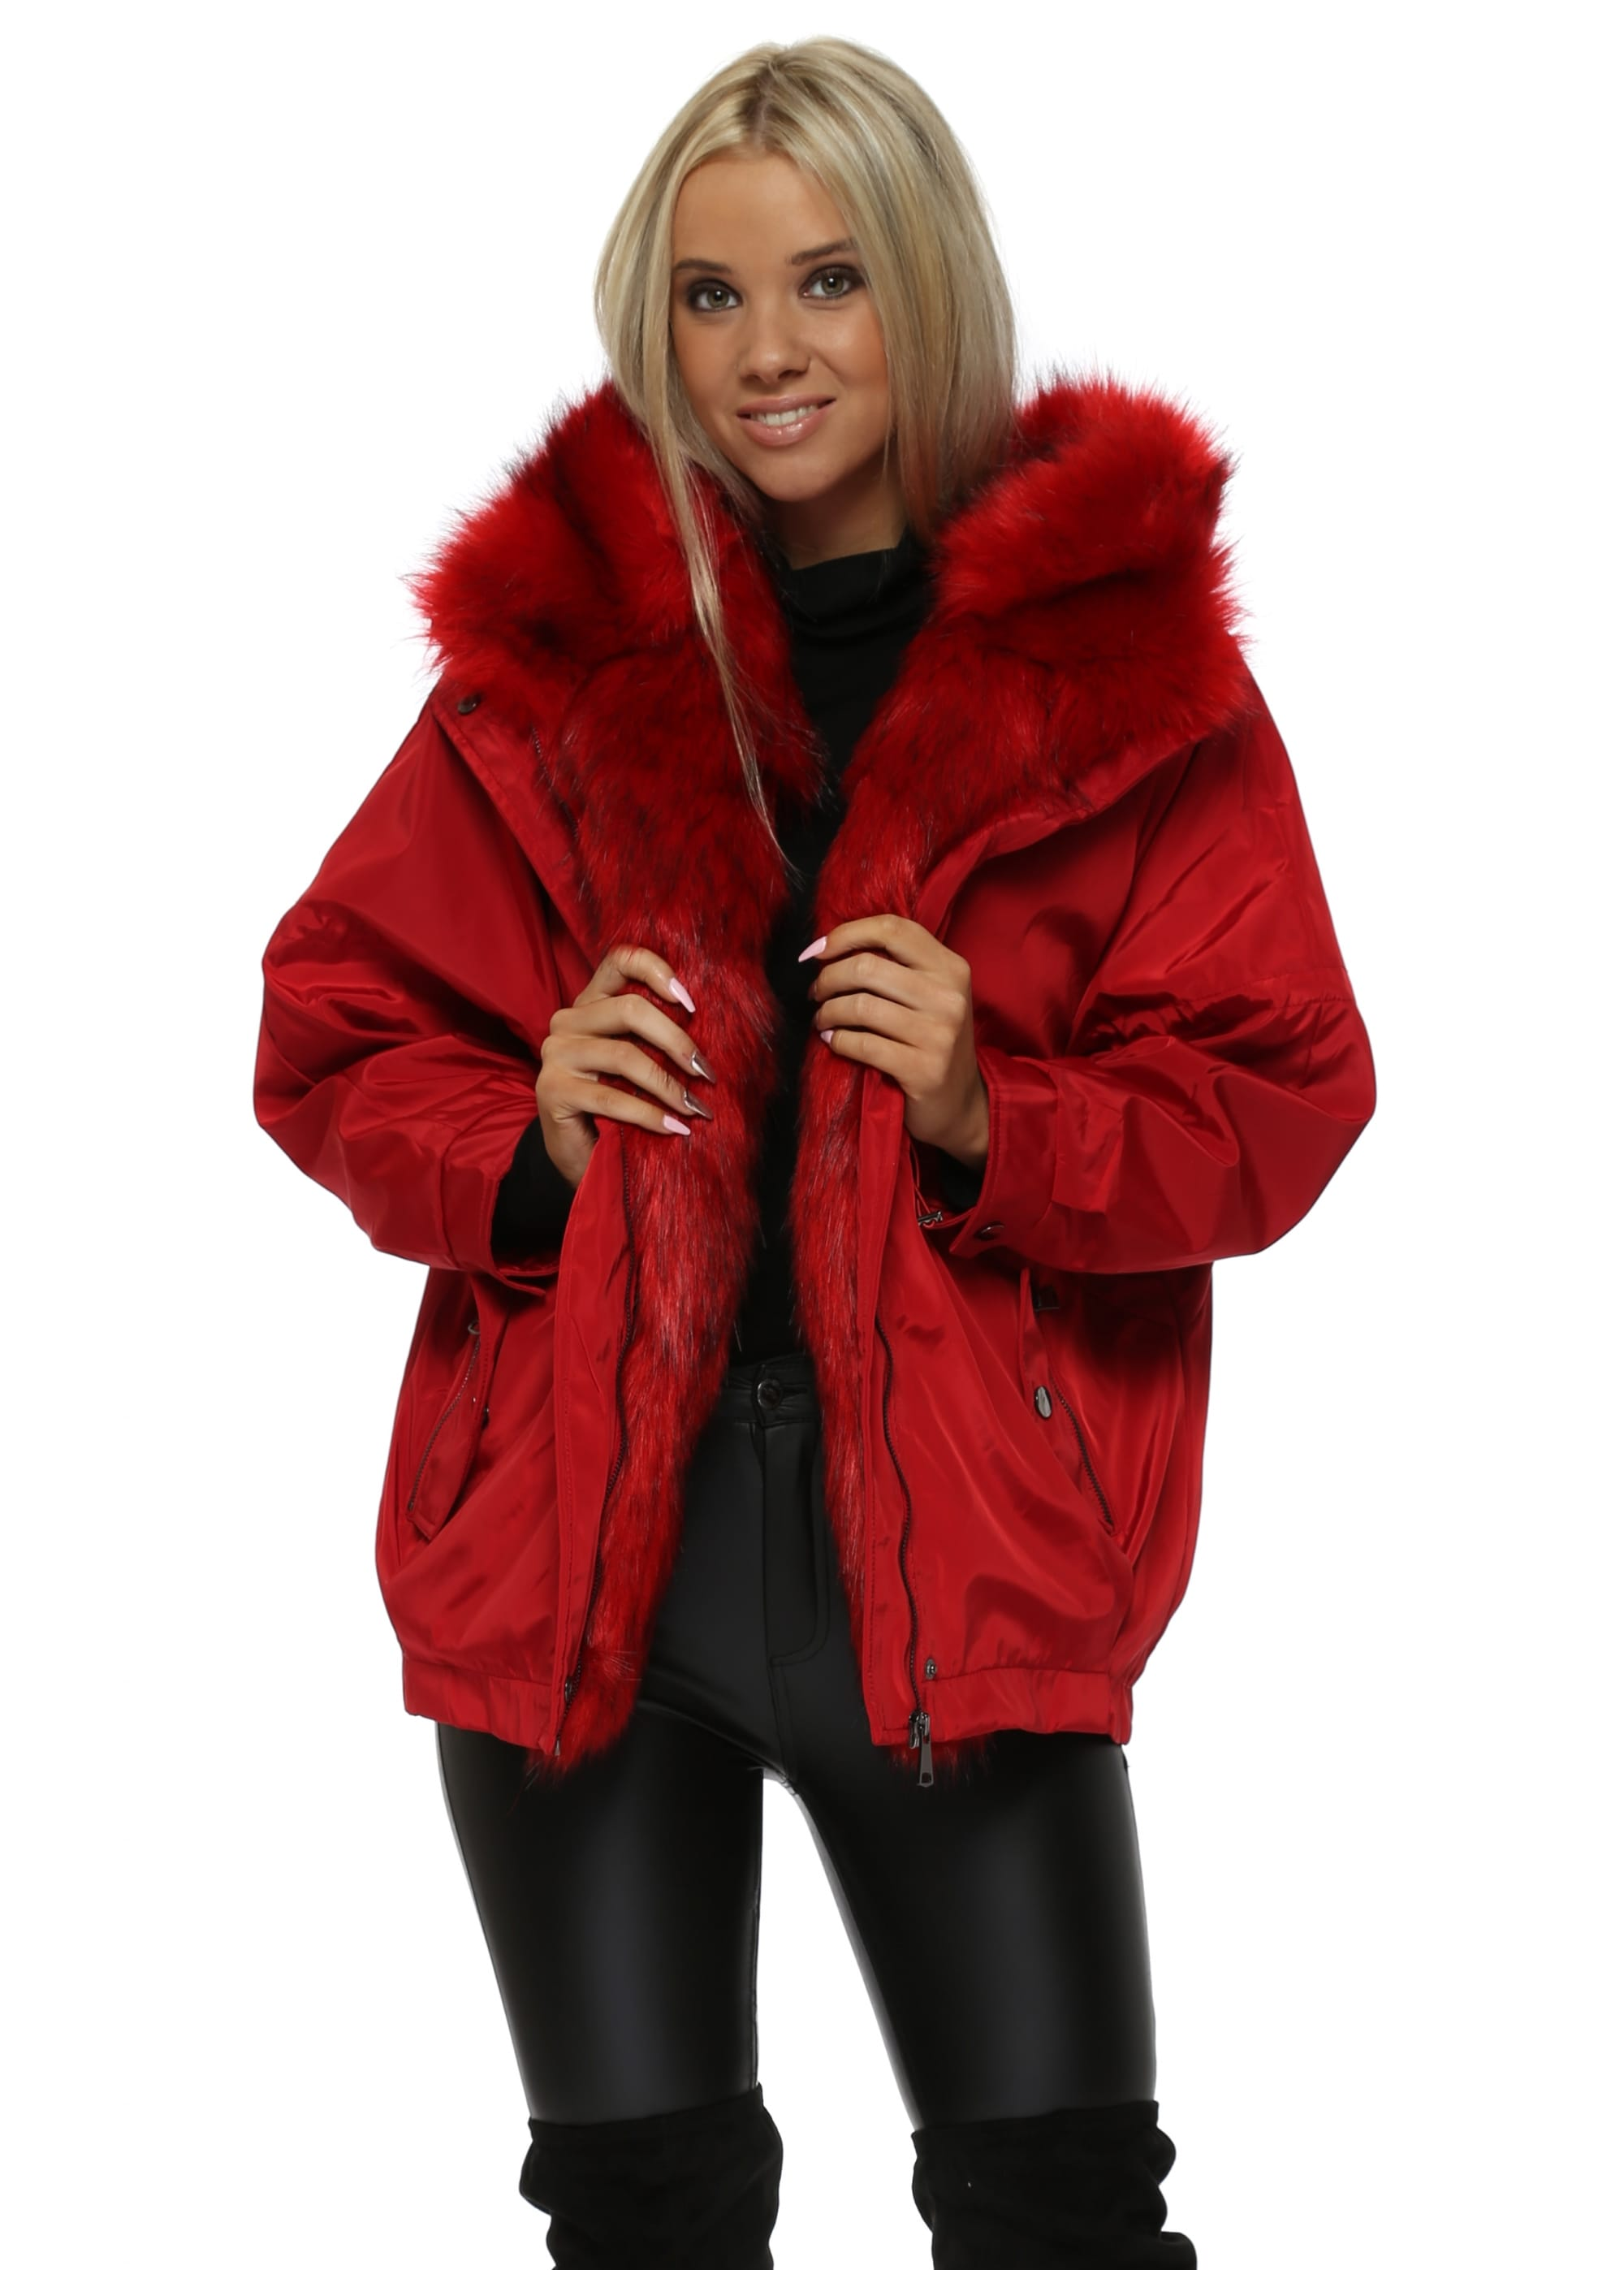 d2d894d7ce0c Red Hooded Puffer Jacket With Detachable Faux Fur